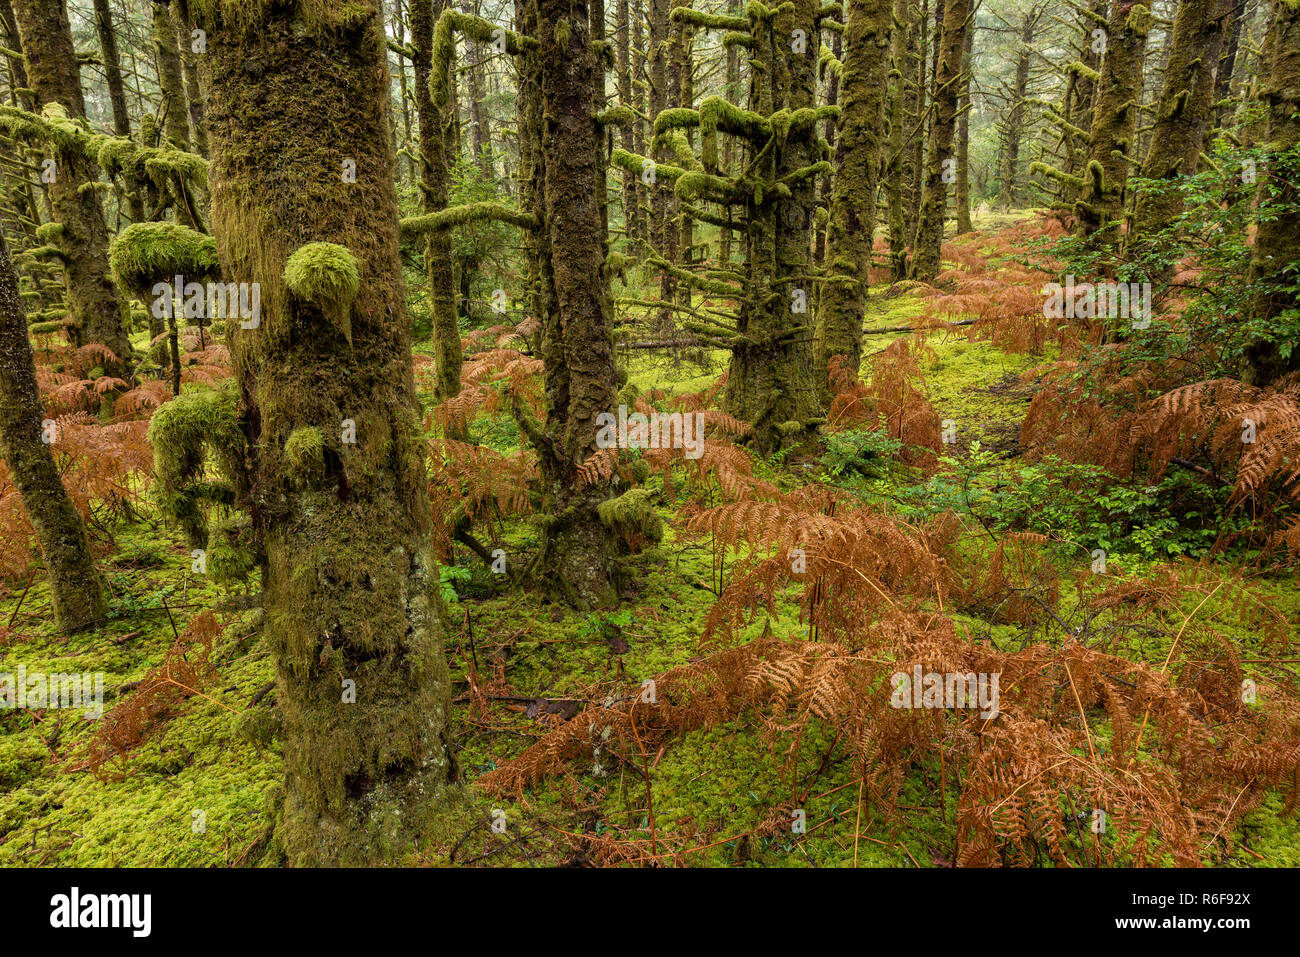 Moss-covered hemlock trees and dying ferns, Fort Stevens State Park, October, OR, USA, by Dominique Braud/Dembinsky Photo Assoc - Stock Image